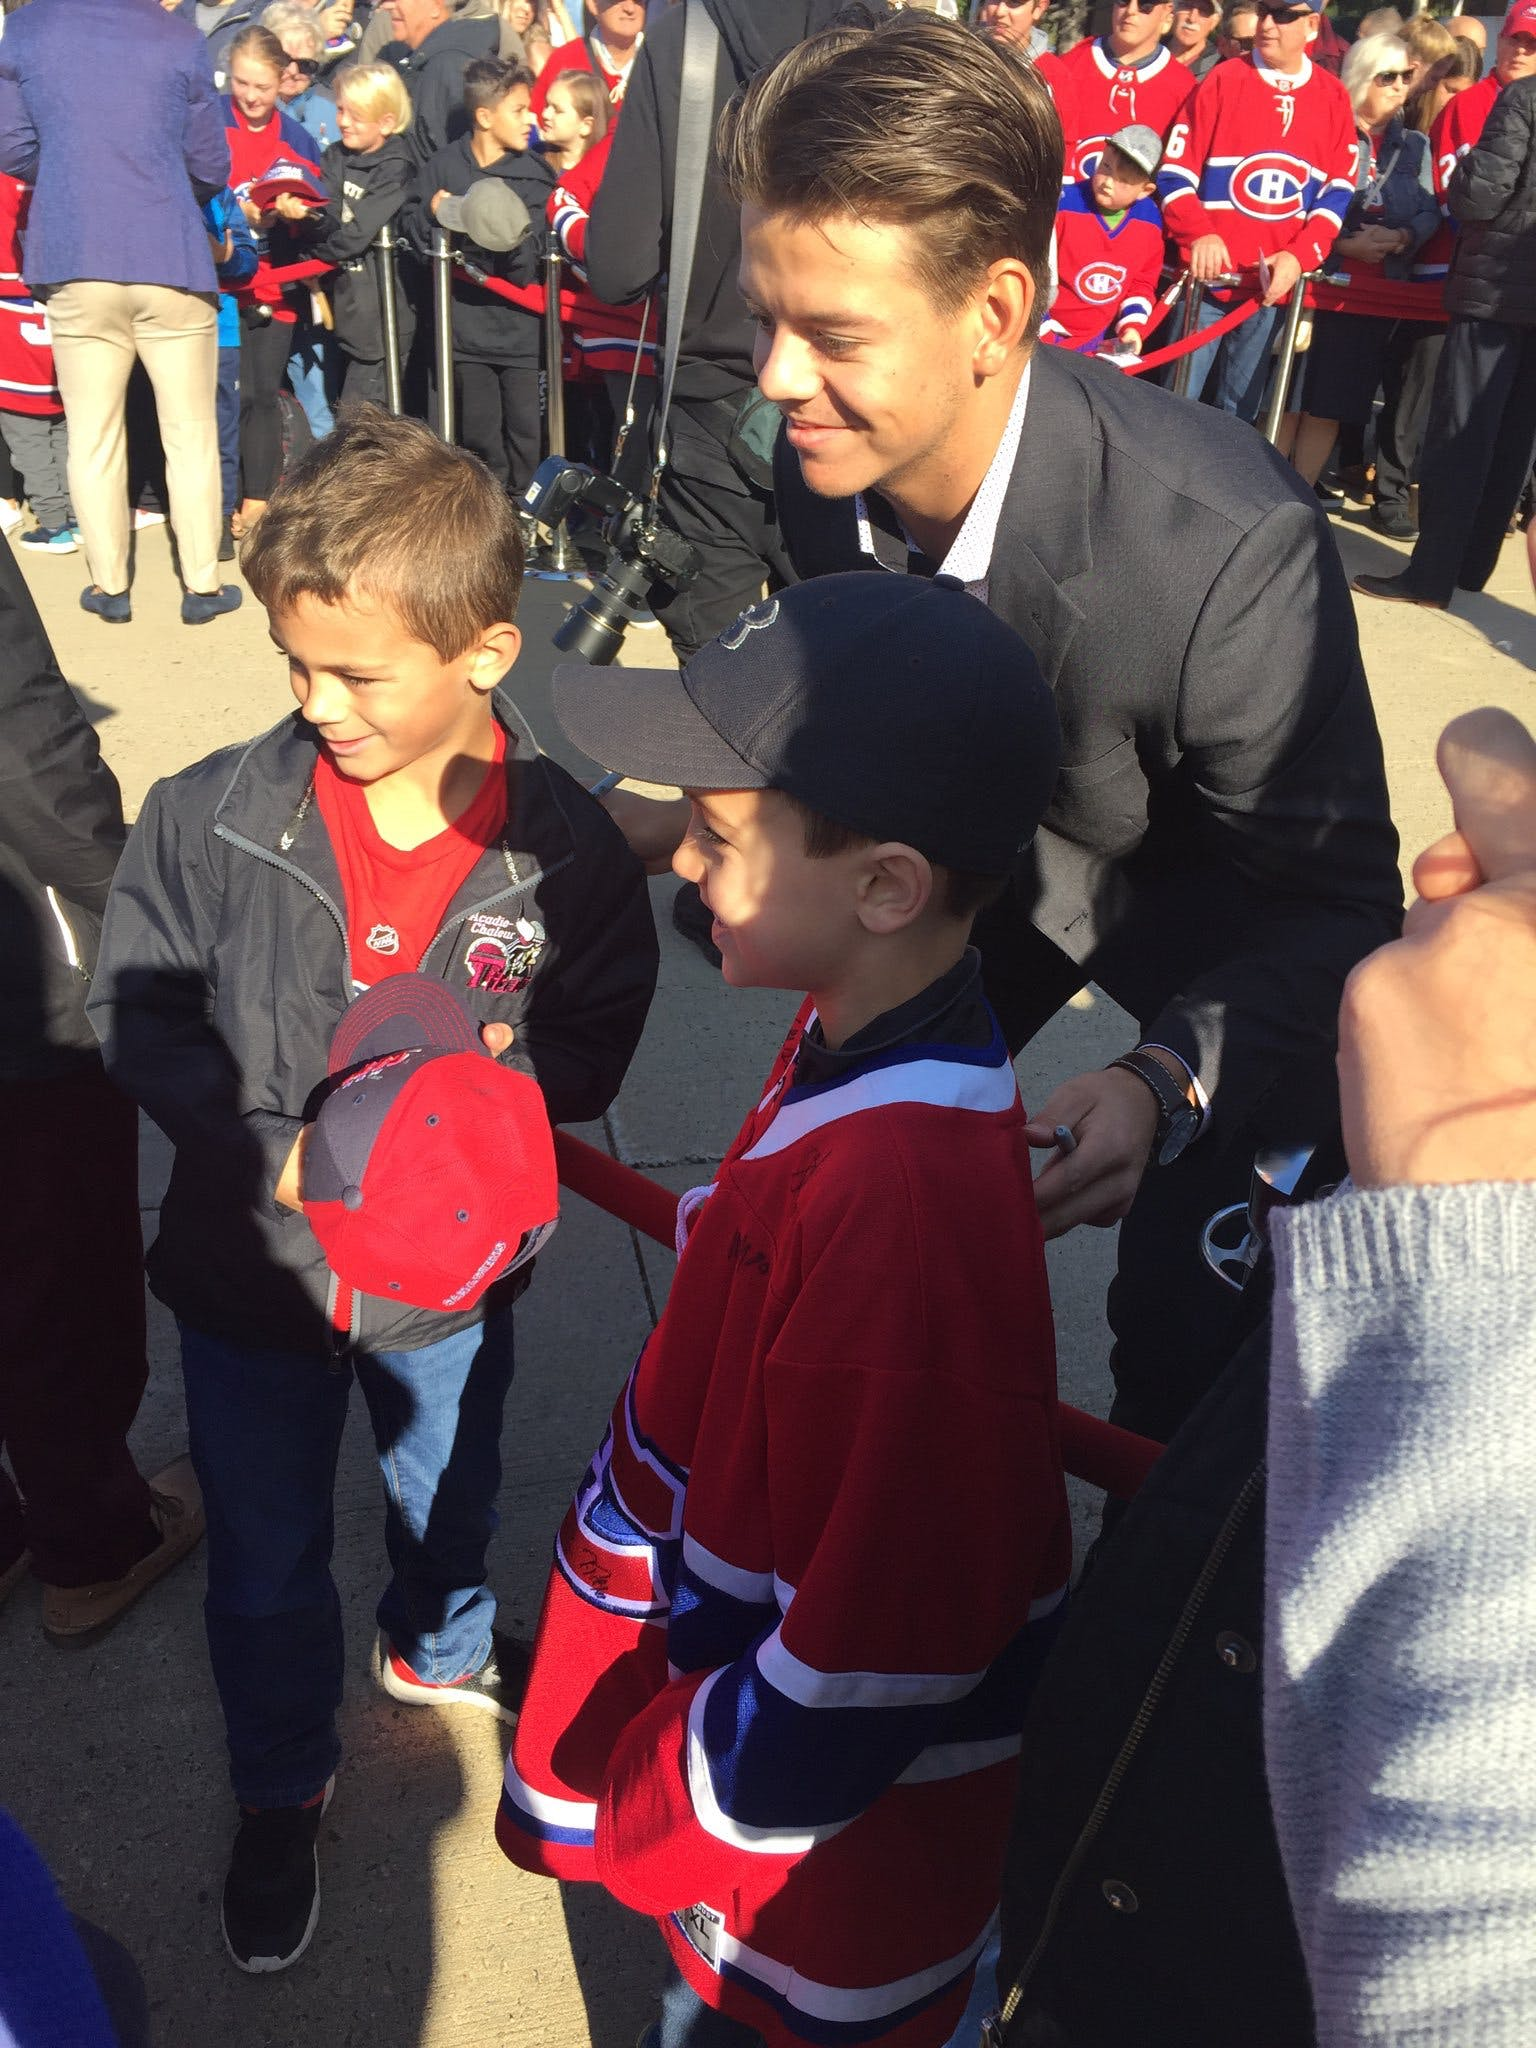 Montreal Canadiens Jesperi Kotkaniemi poses for photo with young fans in Bathurst.